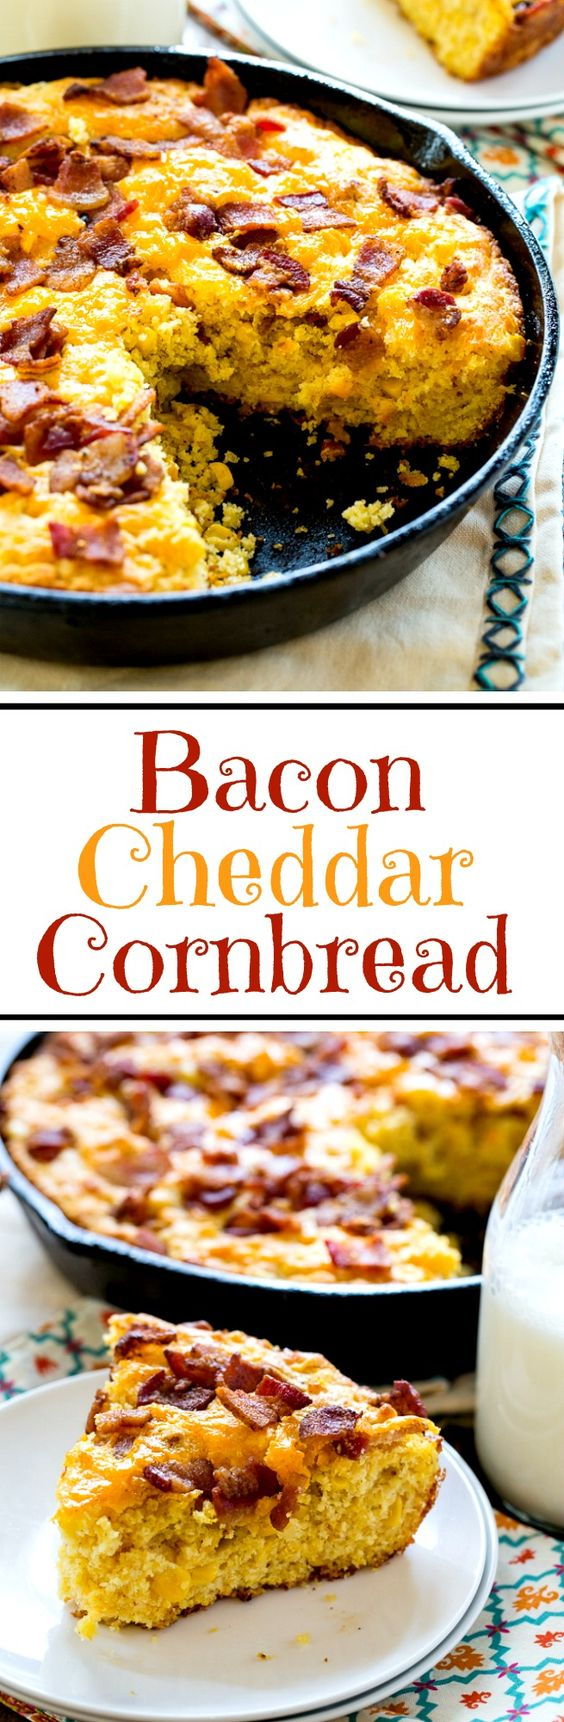 Bacon Cheddar Cornbread has a irresistible salty, smokey flavor with ...